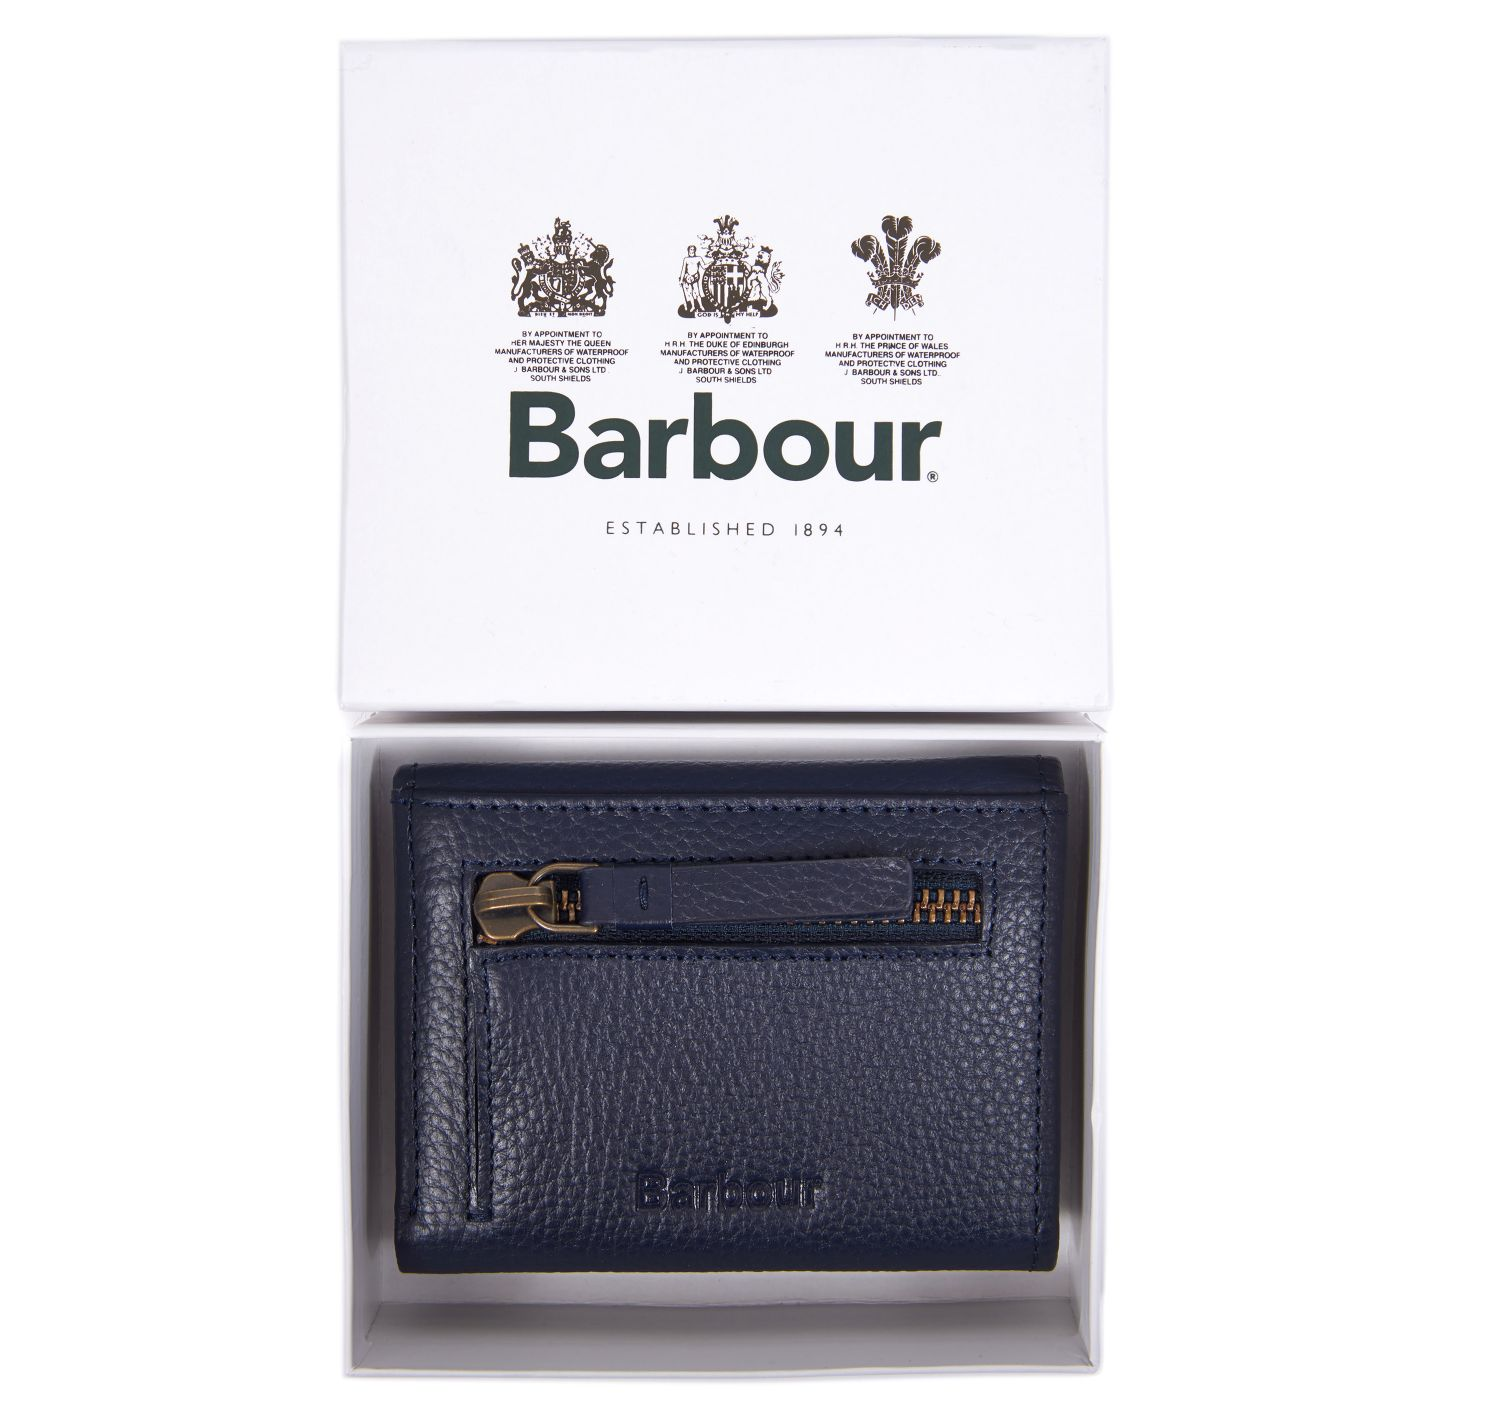 Barbour Barbour Leather Billfold Purse Navy